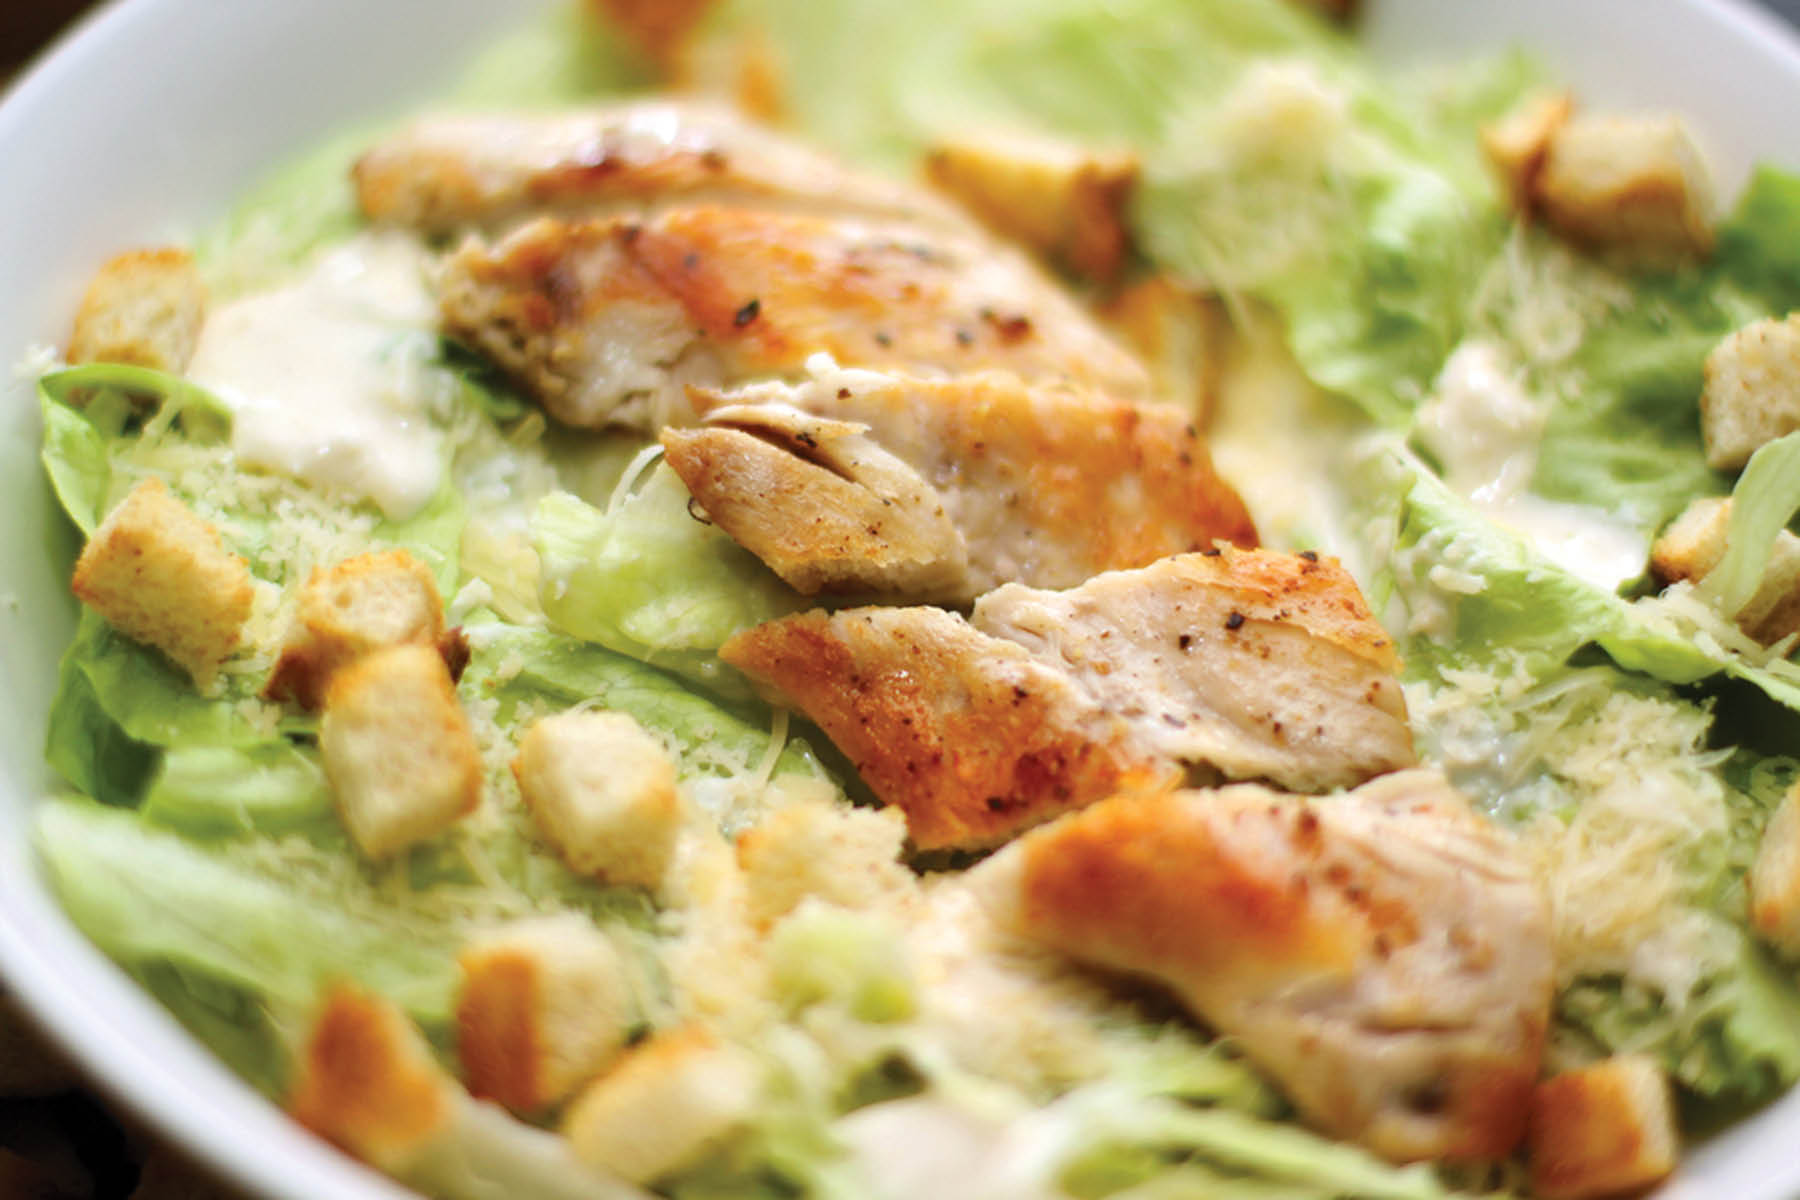 Heavenly Chicken and Ribs - Salad